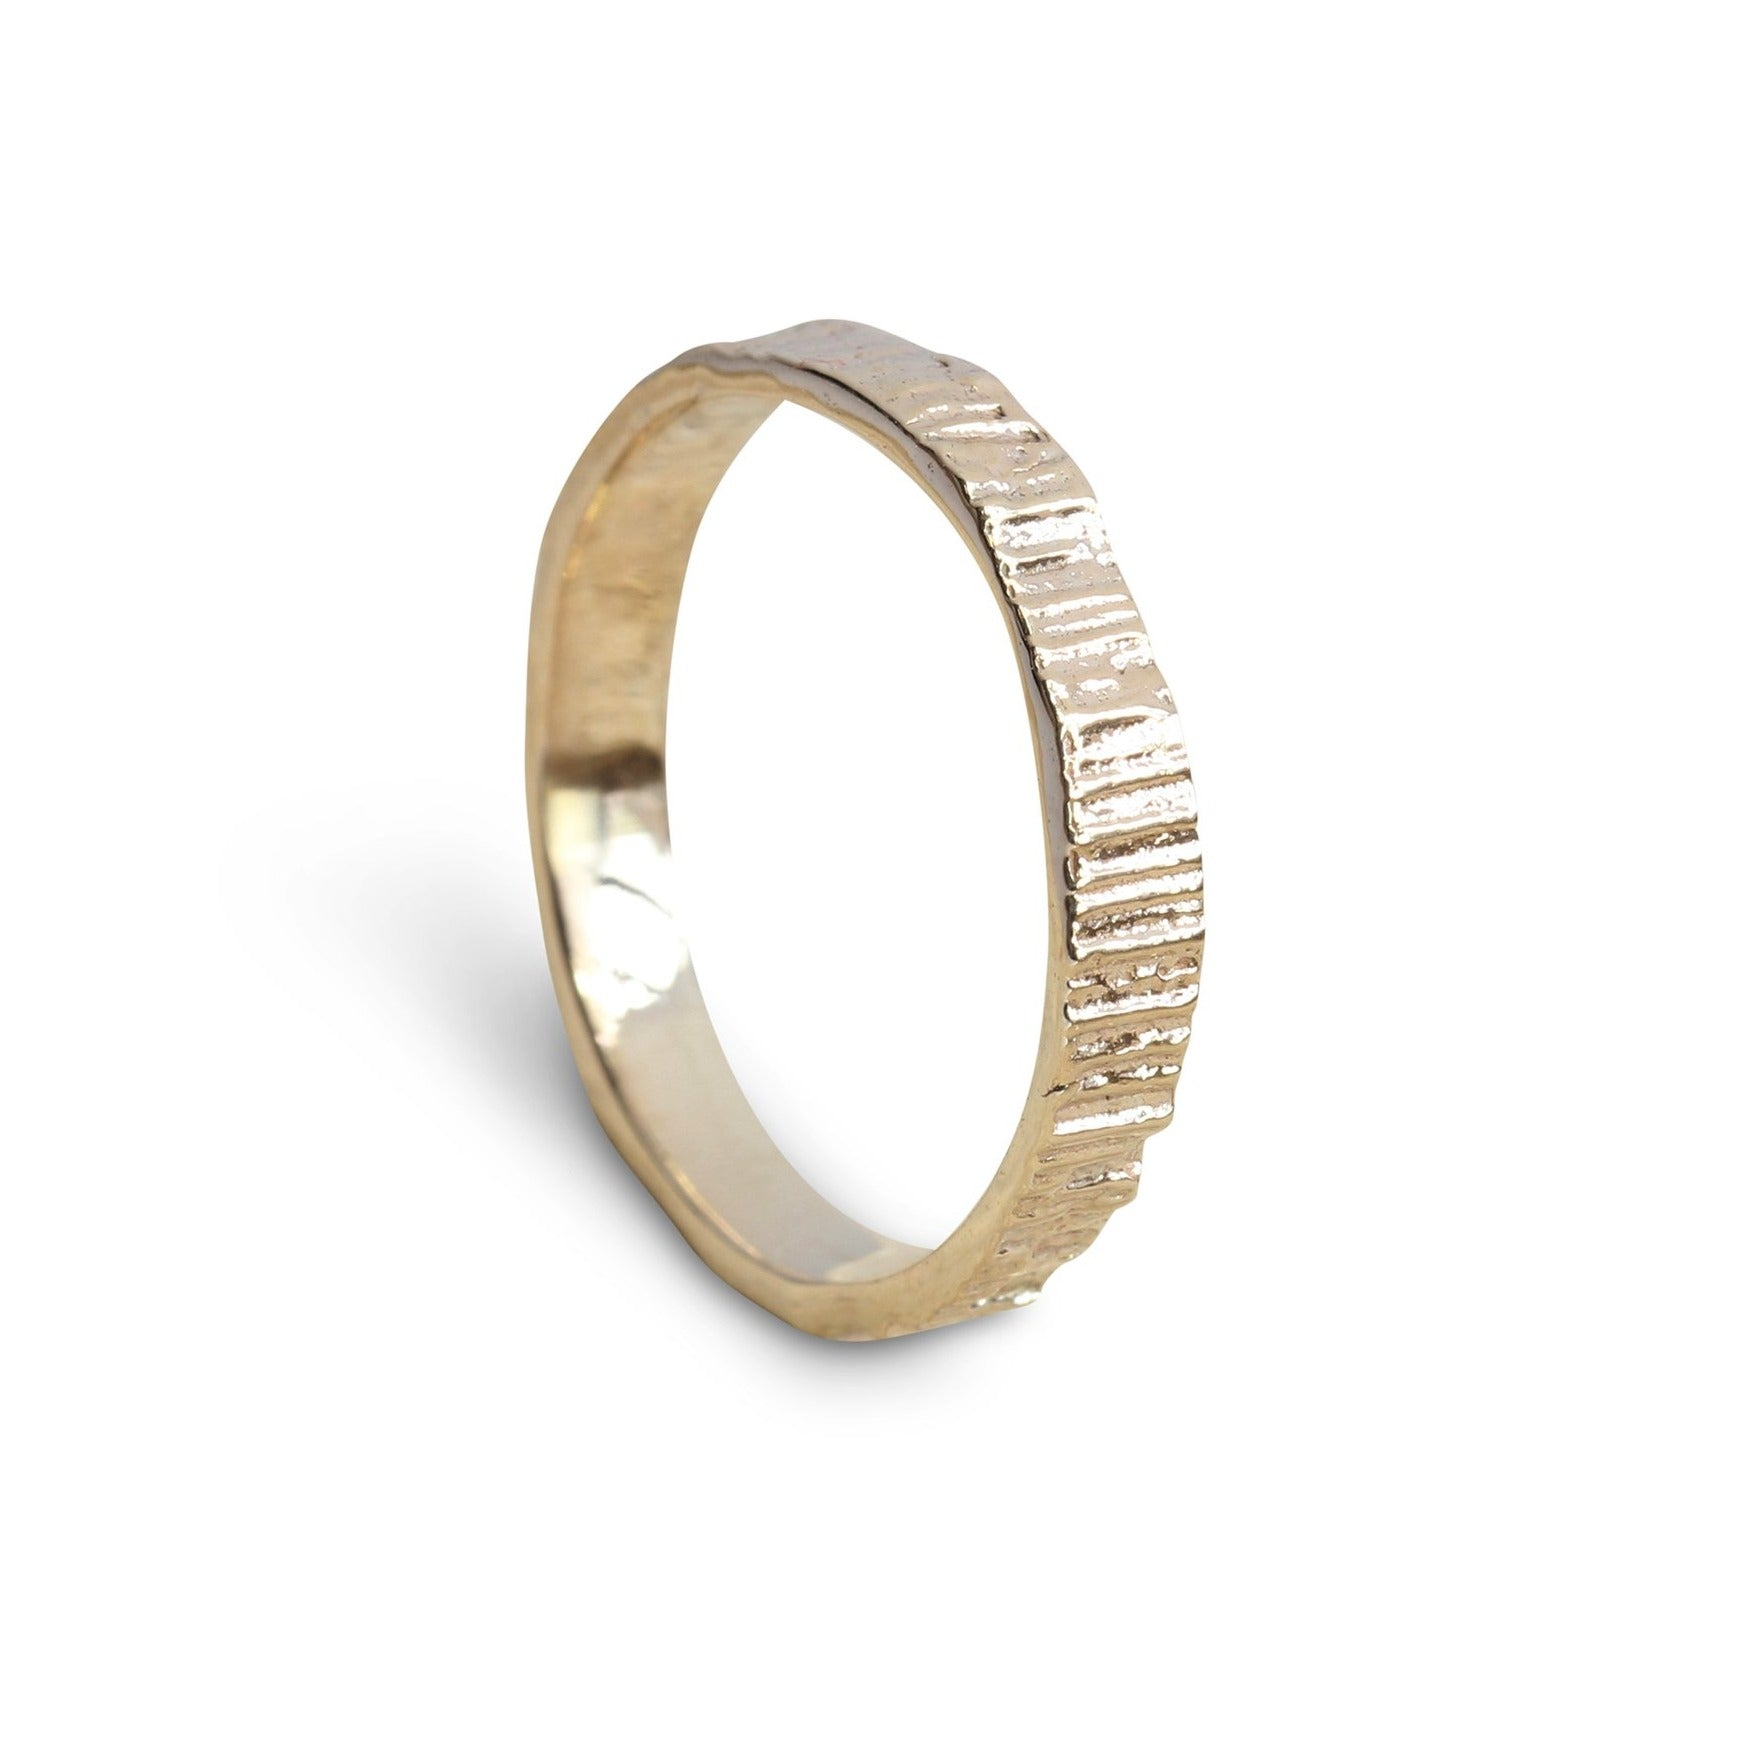 Bark ring 3mm